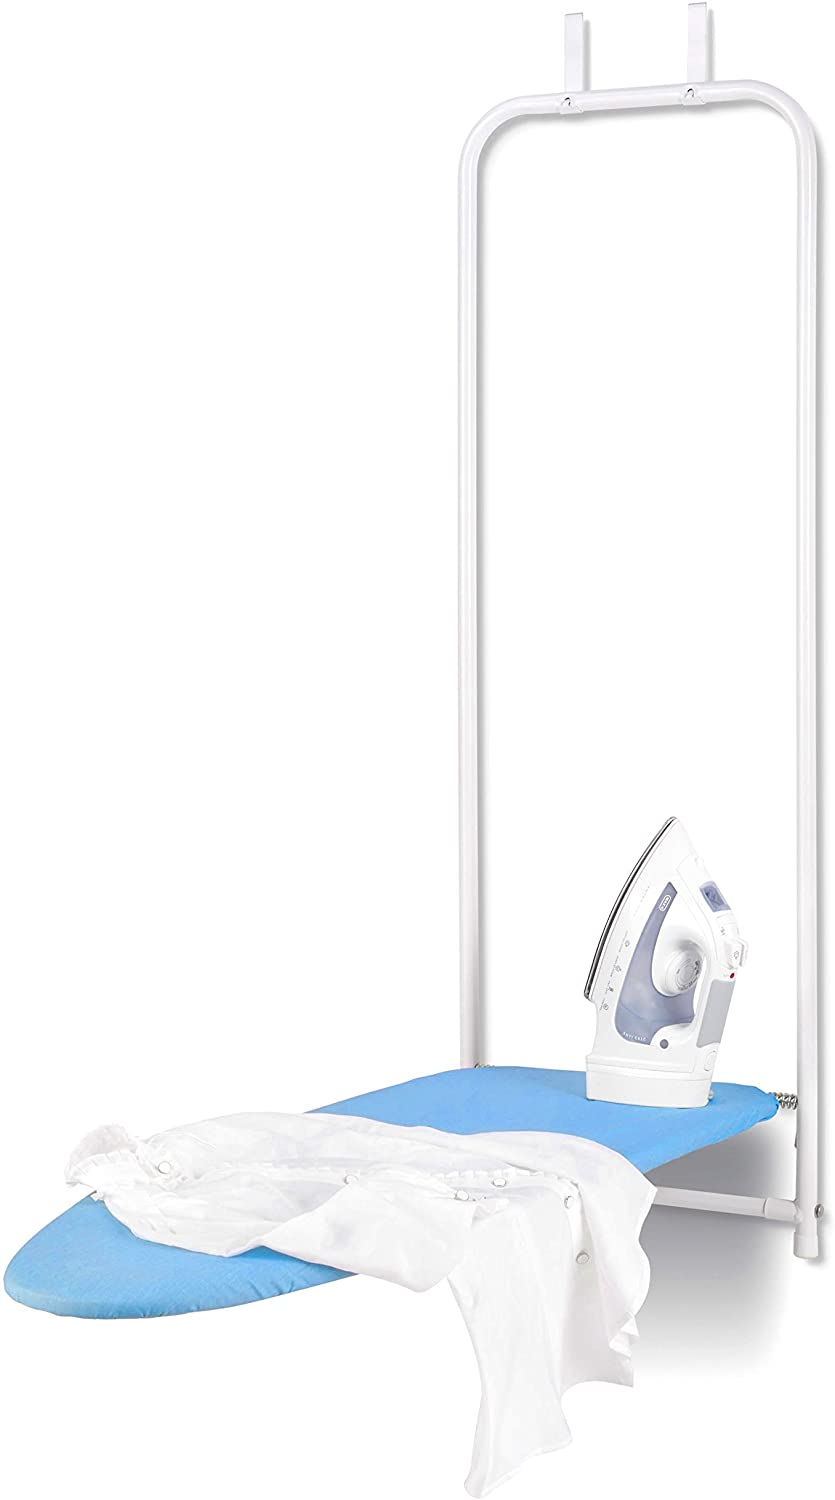 Honey-Can-Do Door Hanging Ironing Board